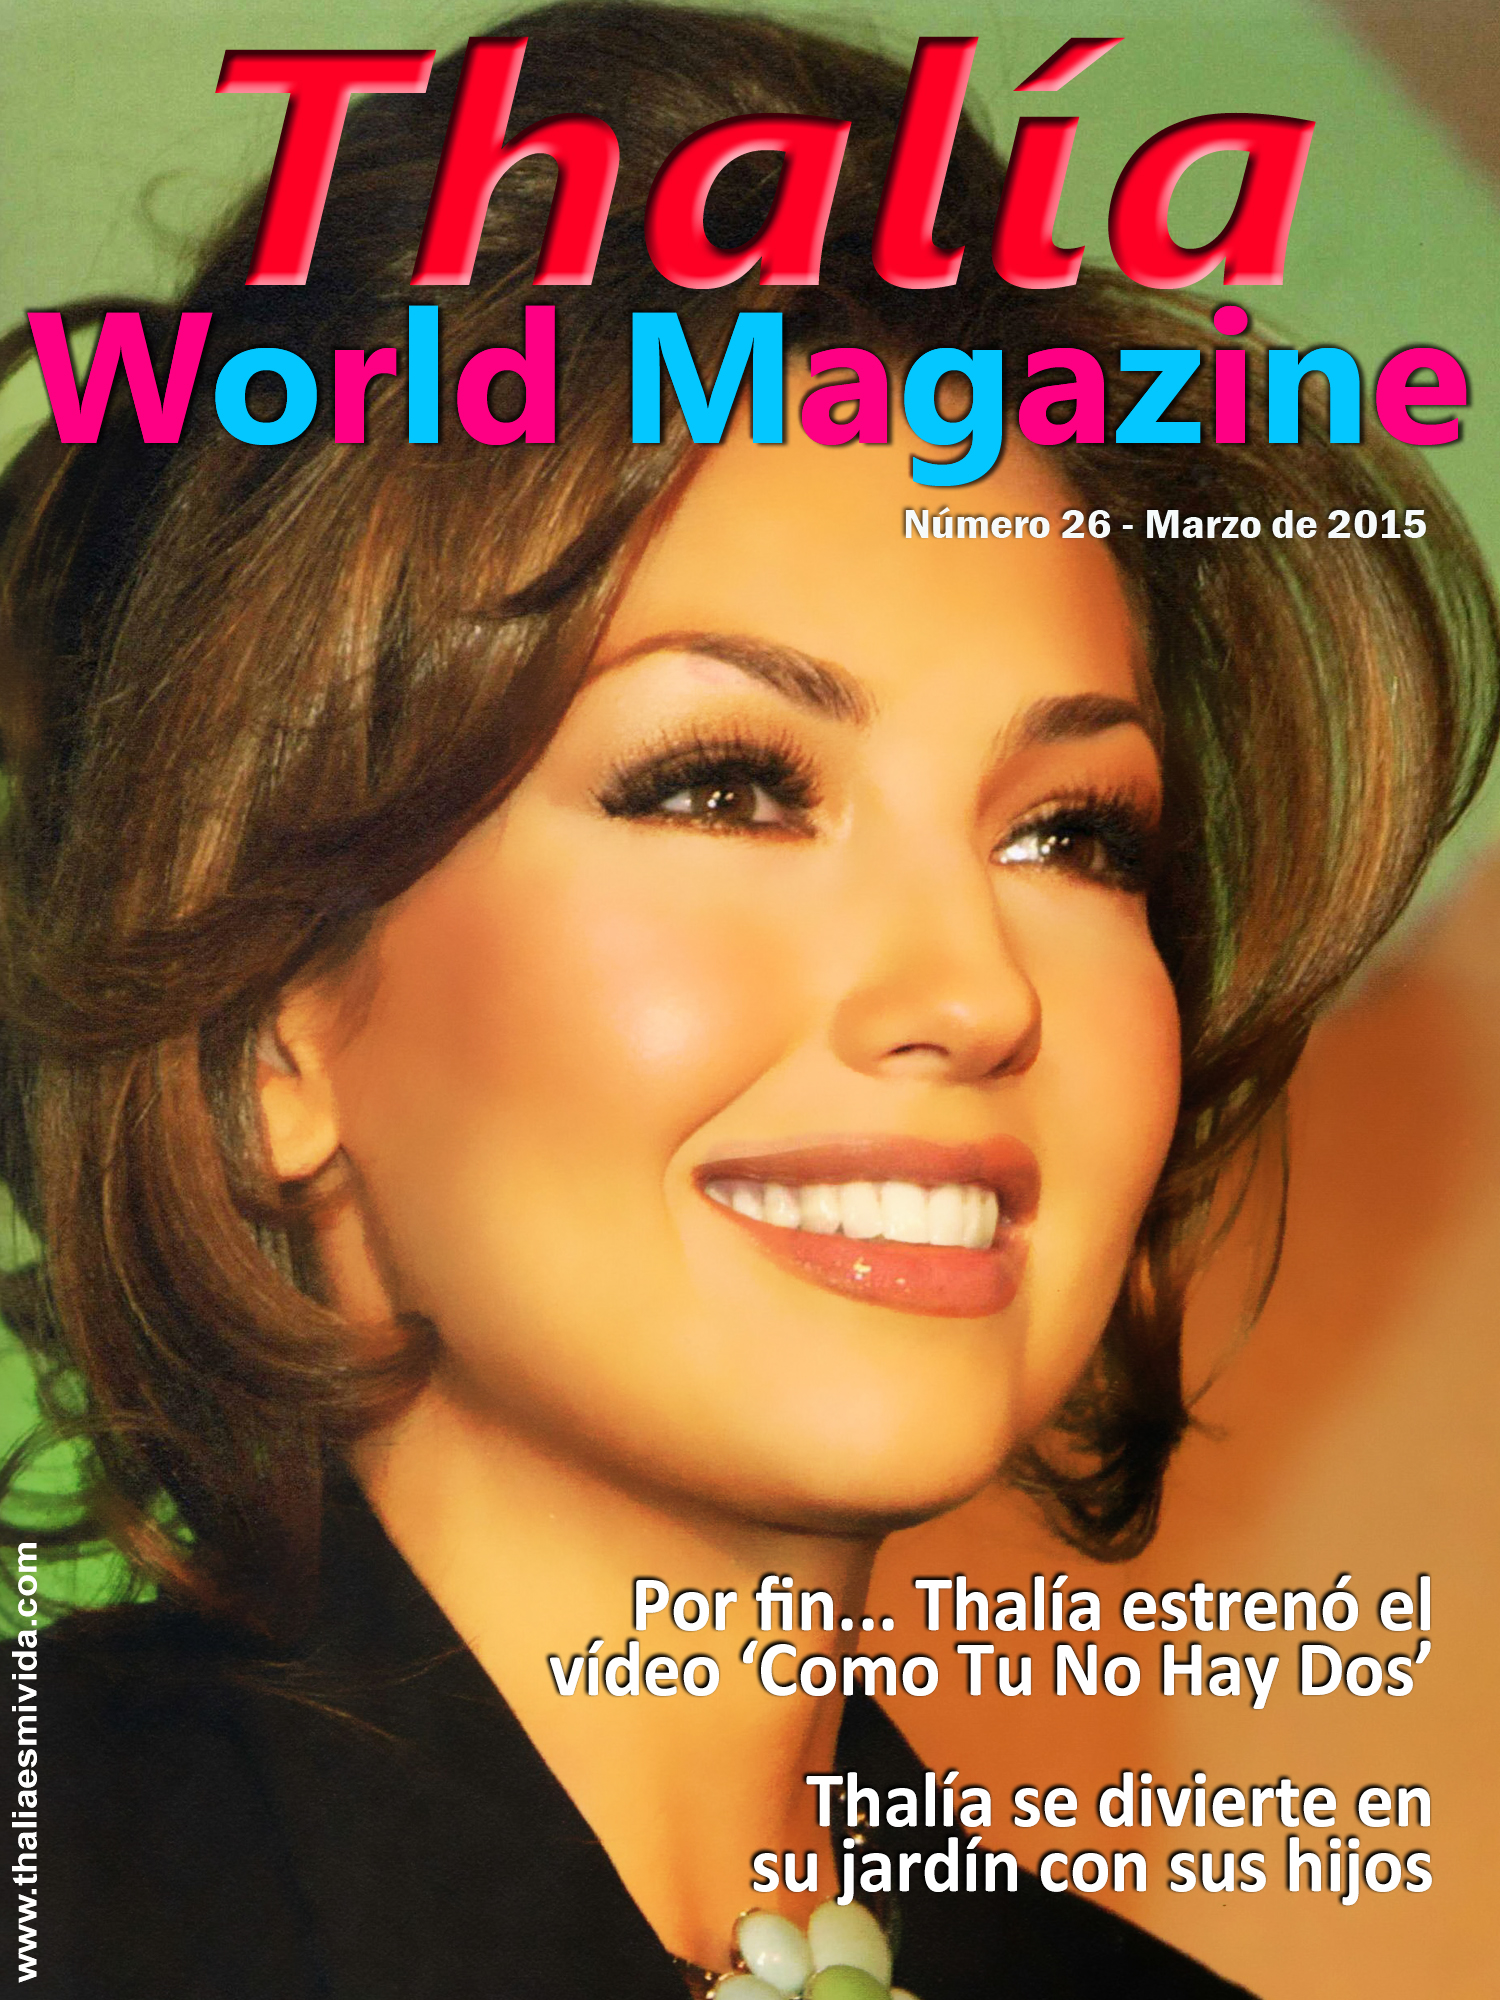 Thalia World Magazine 26